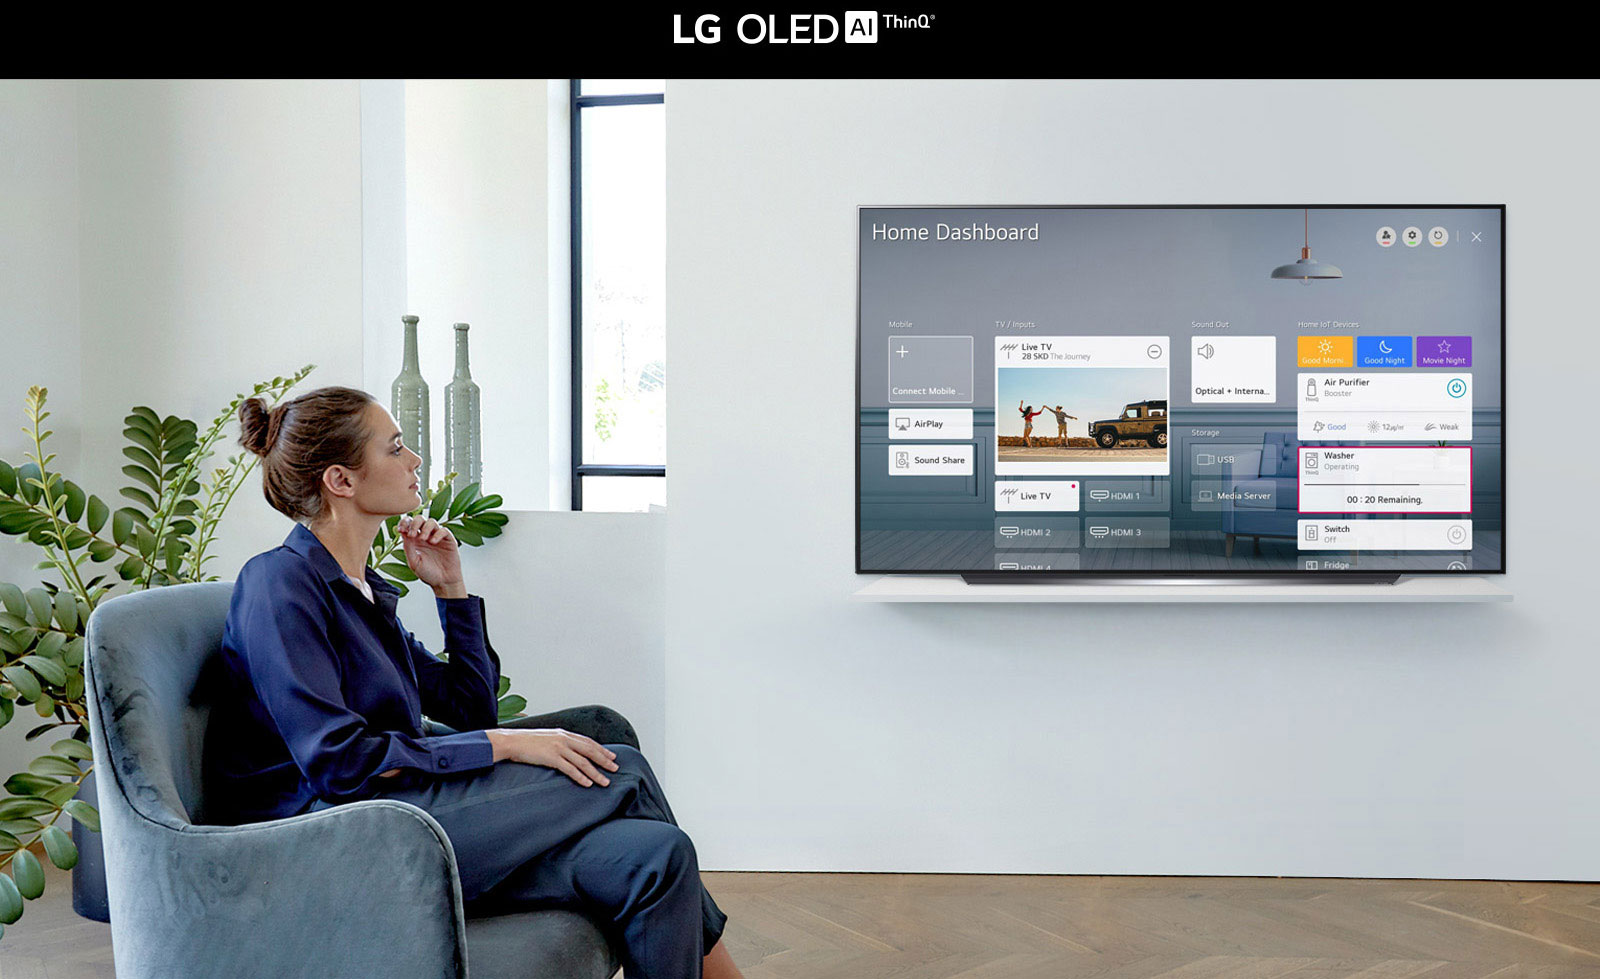 lg-oled-cx9la-4k-oled-tv-lifestyle-0